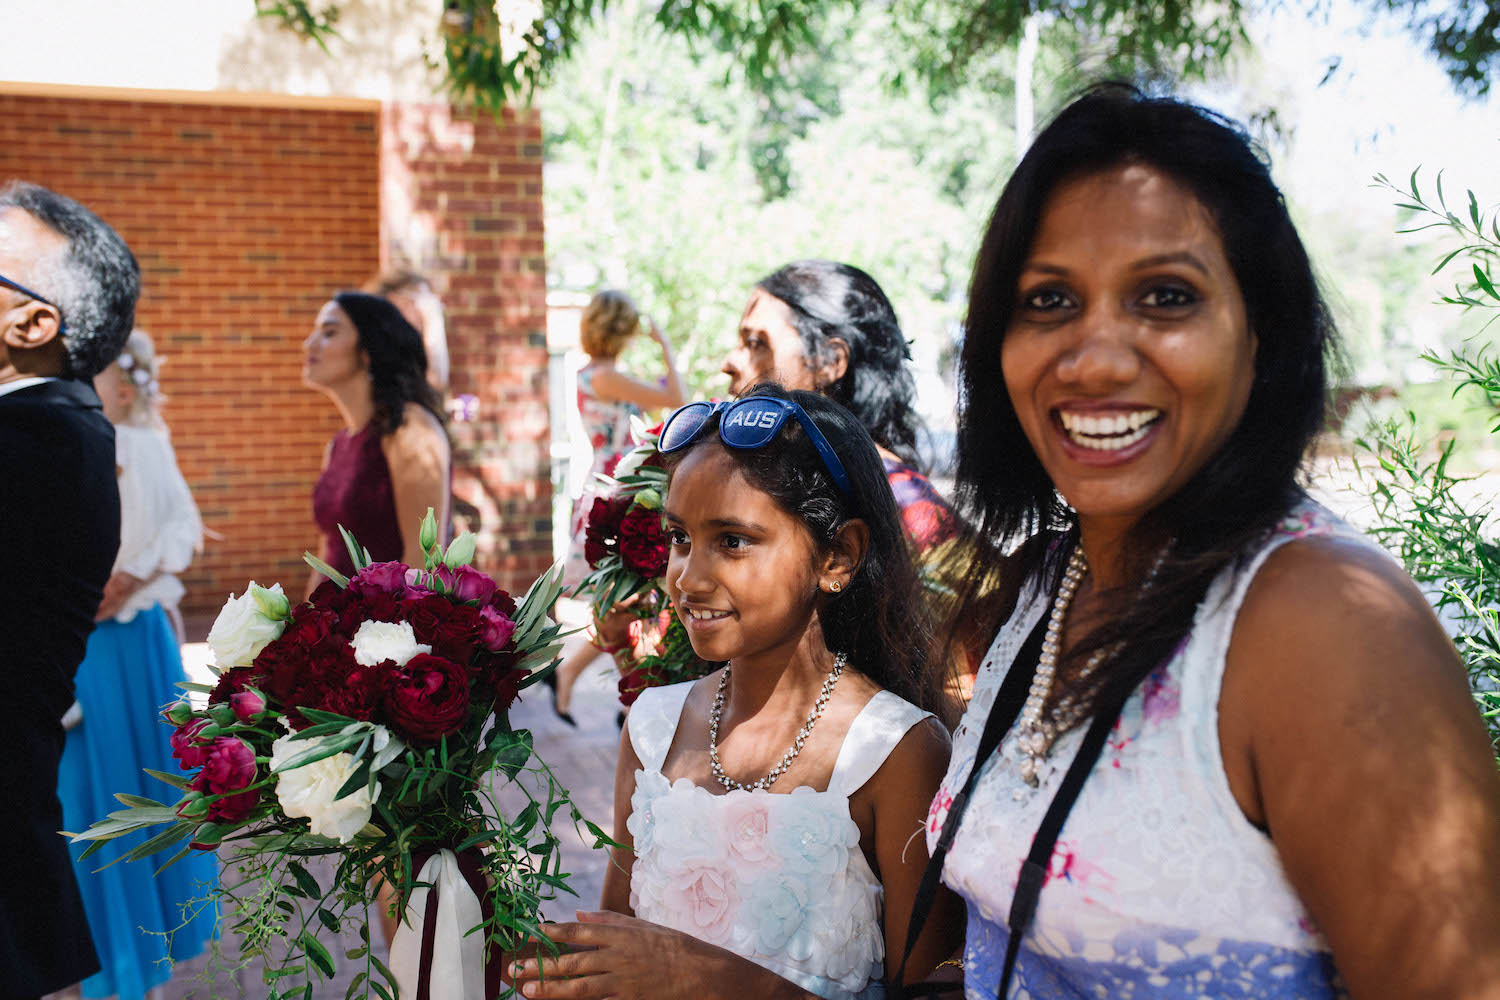 Family of the bride celebrating outside St Matthew's Anglican Church, Subiaco, after the Wedding Ceremony.